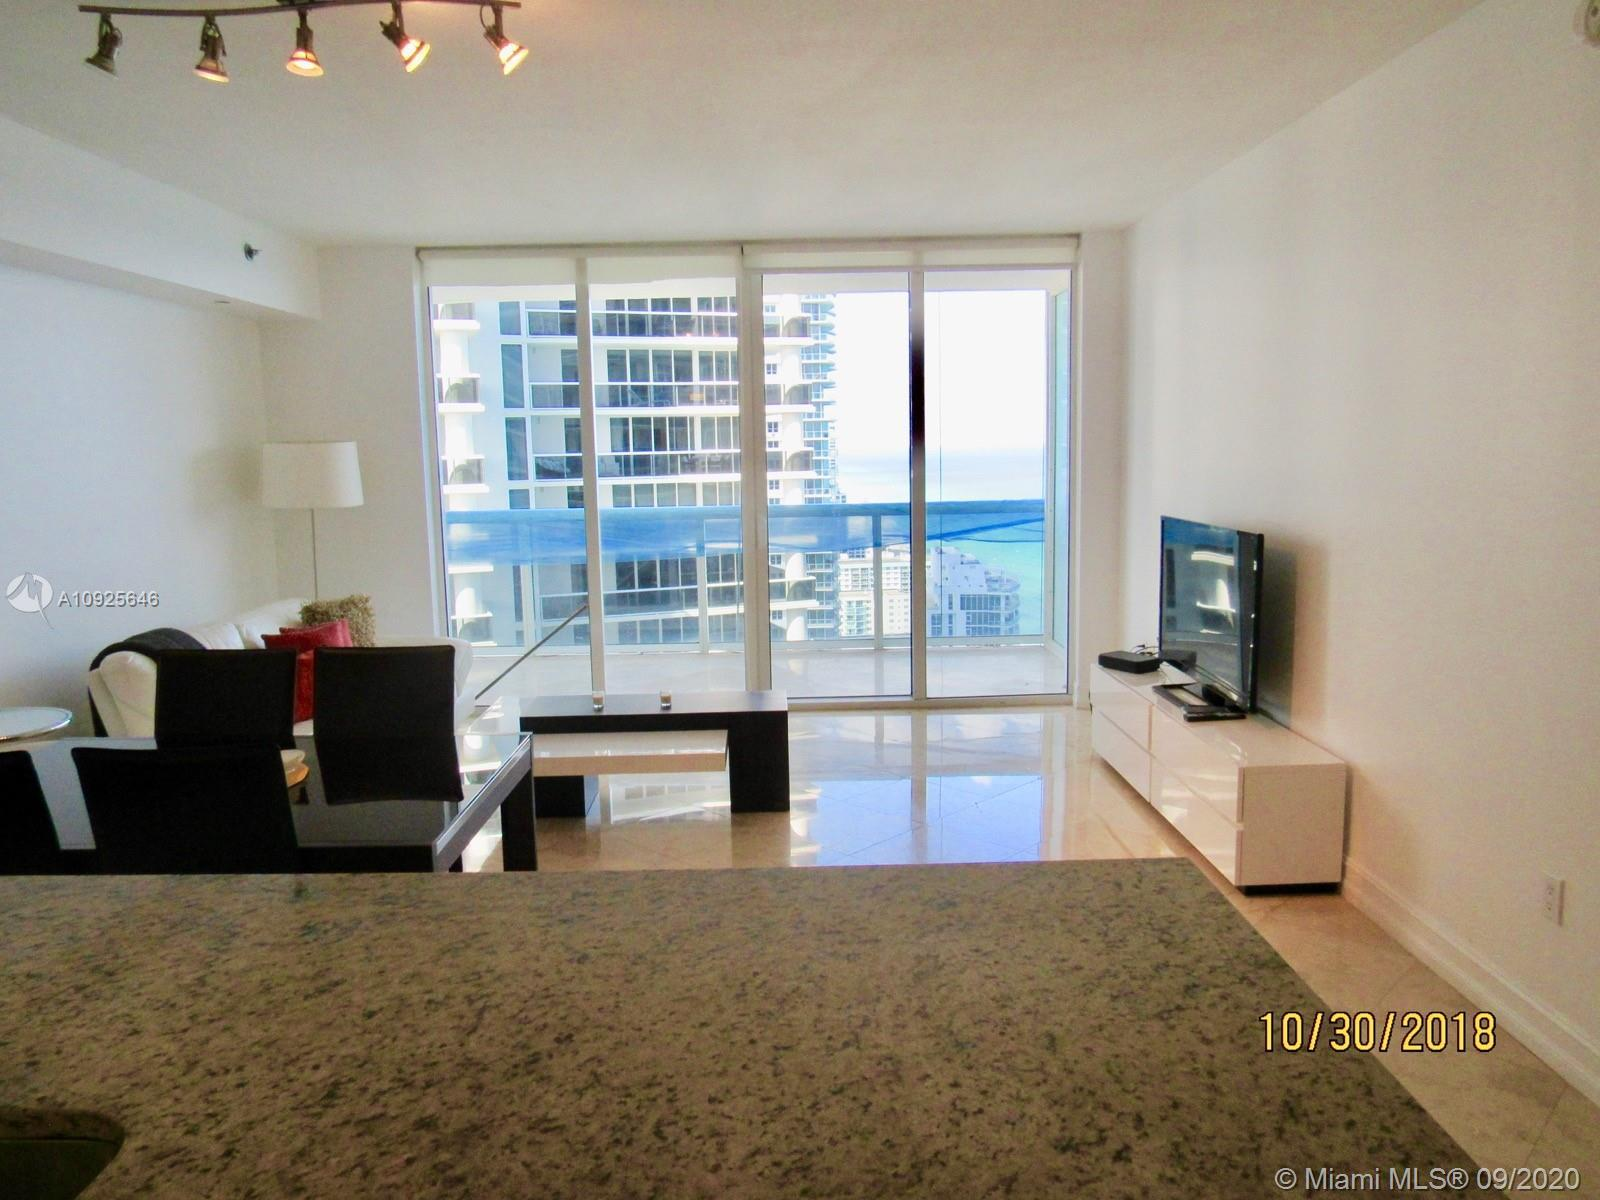 Spectacular unit on high floor offering views to Fort Lauderdale looking north. Watch cruise ships s